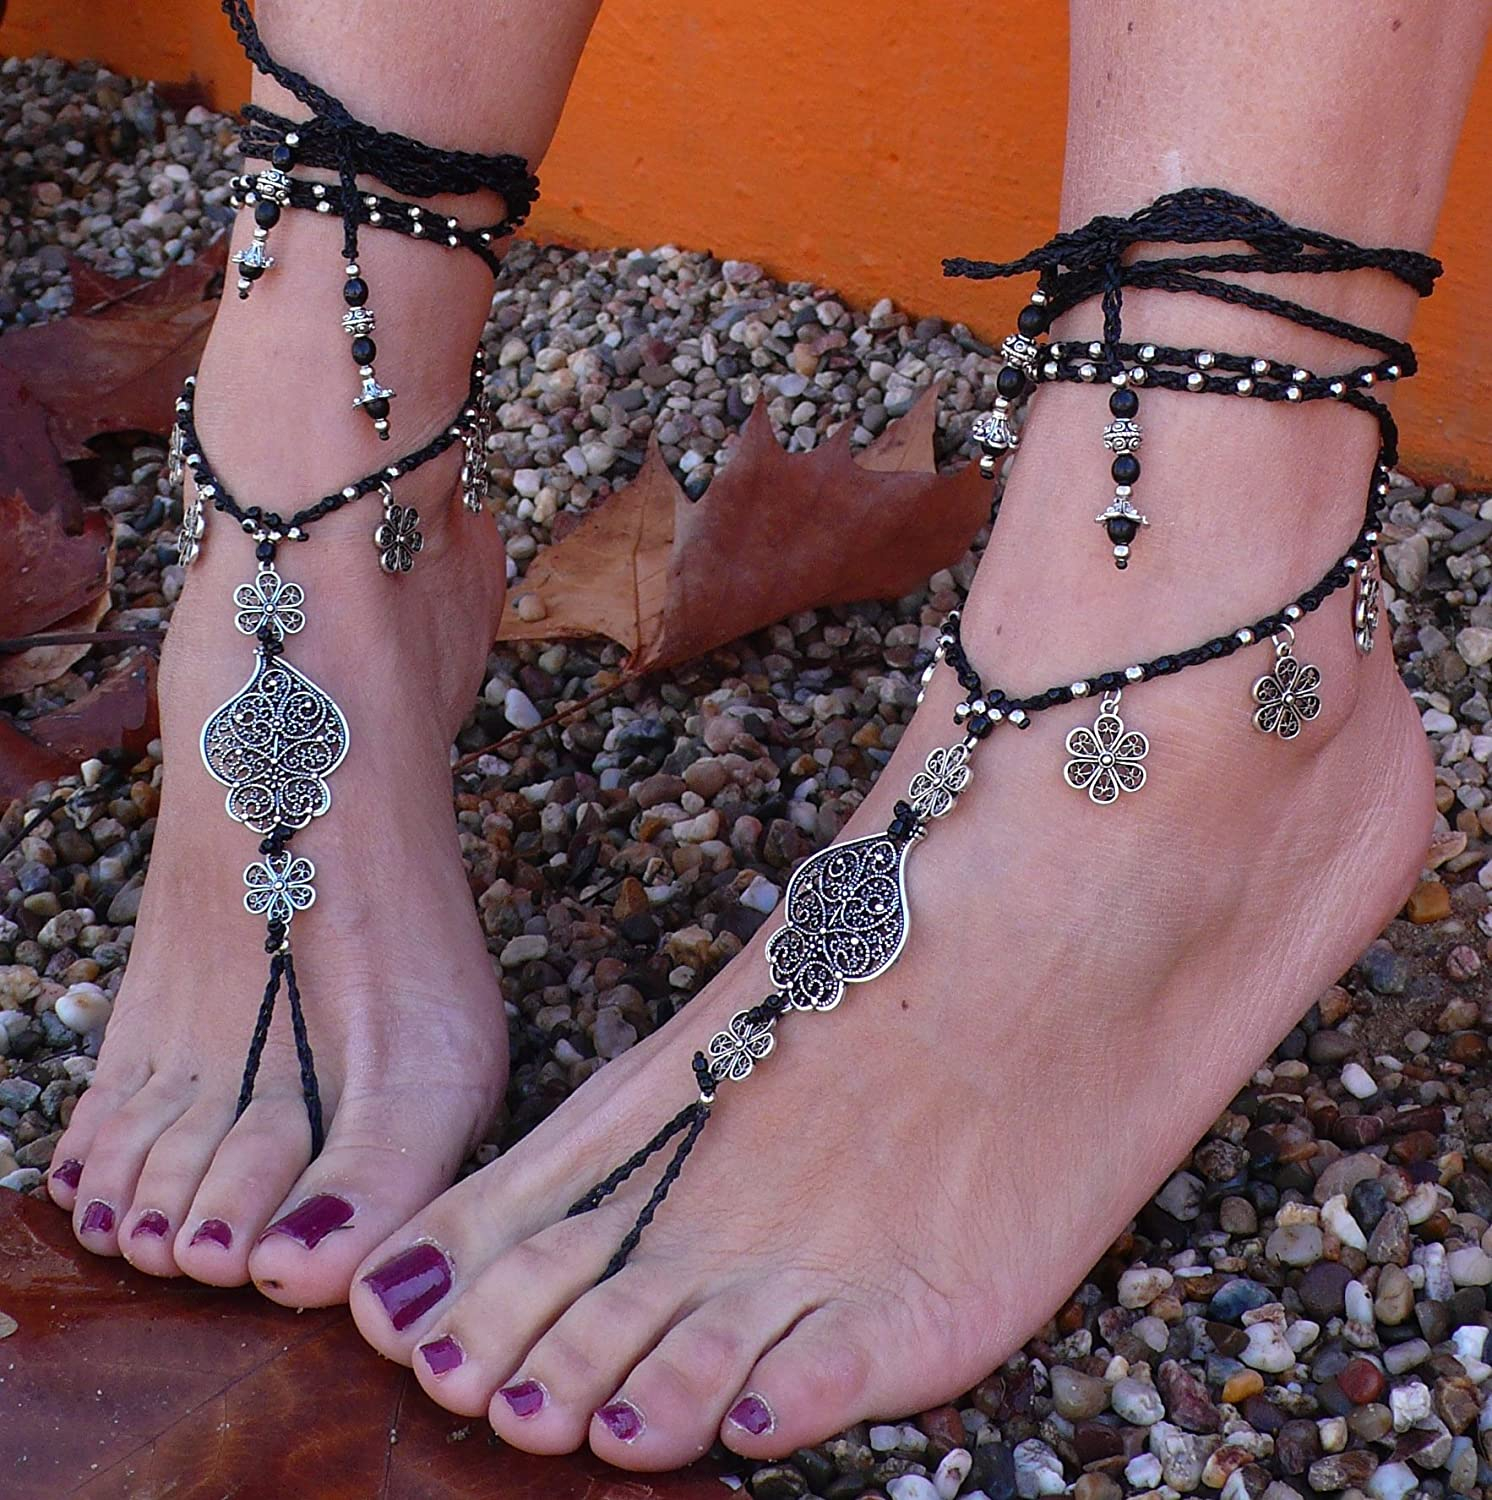 Pano Para Tanto Heart of Viana Barefoot Sandals Black Foot Jewerly